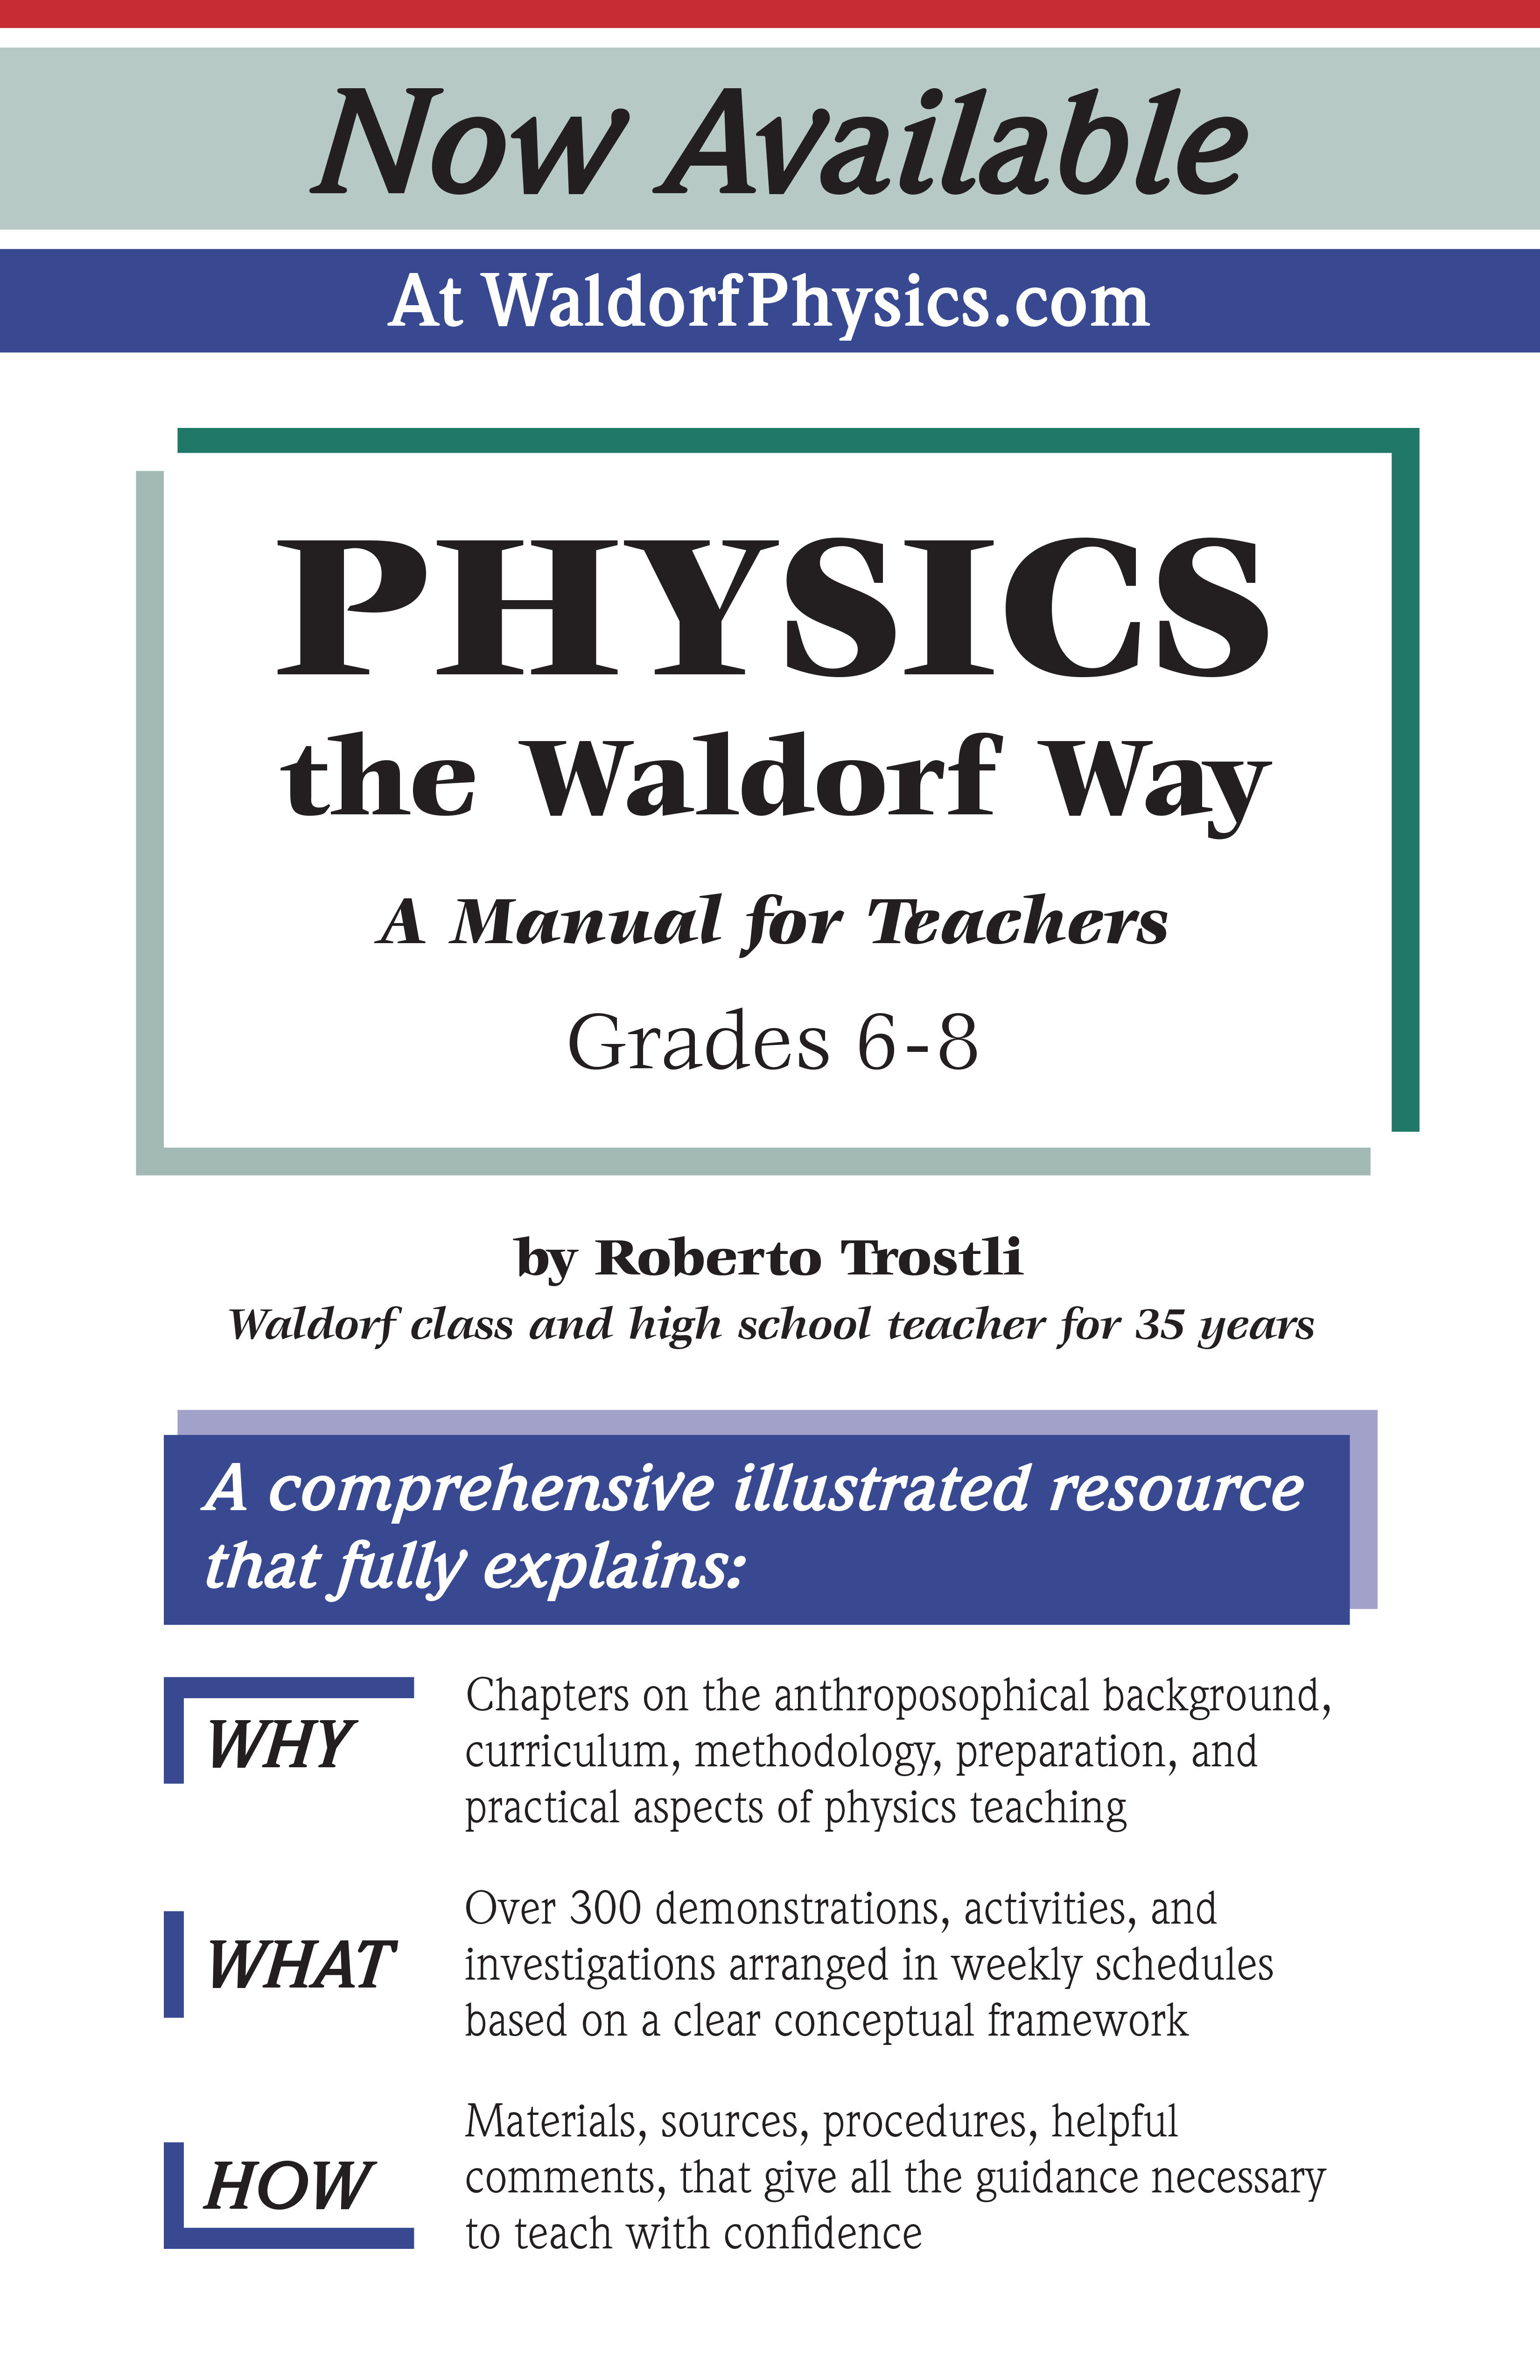 Announcing a new resource for teaching Physics